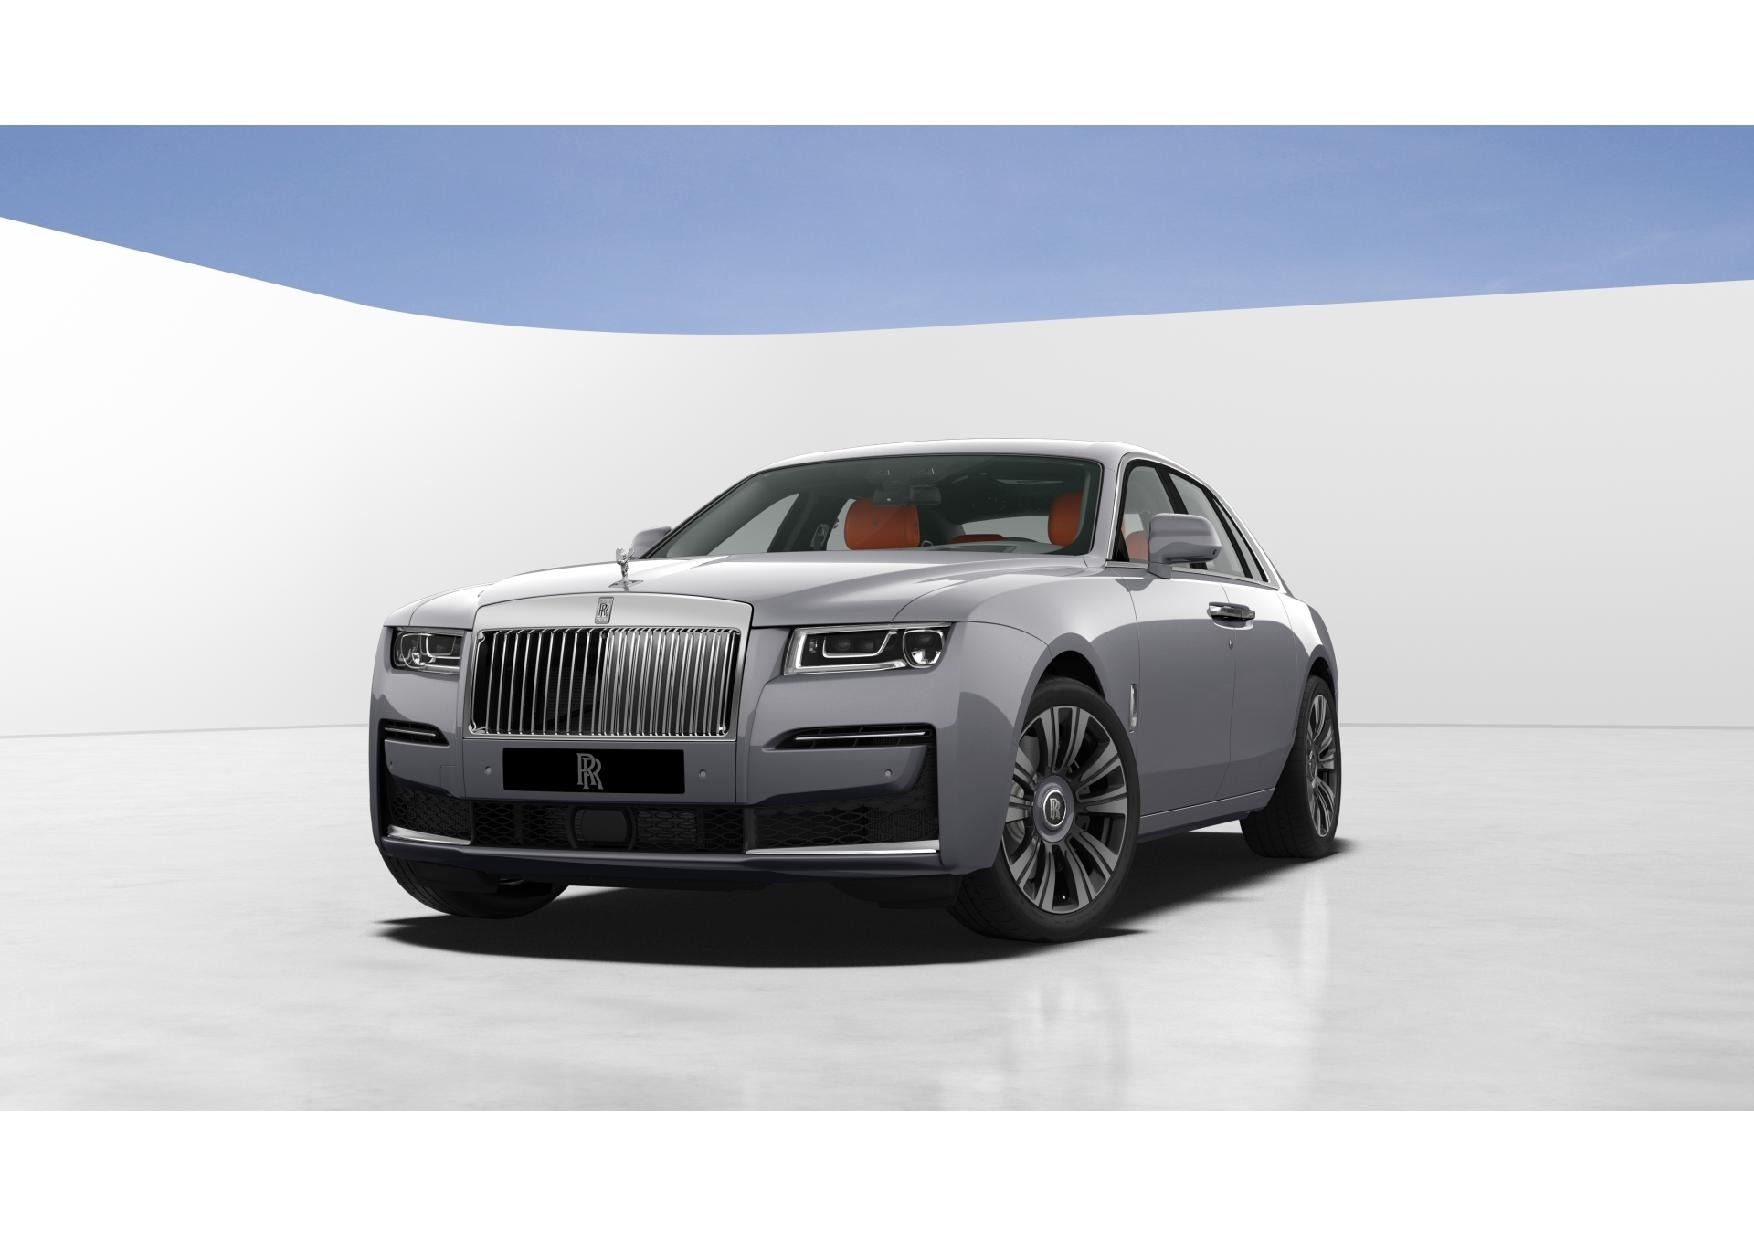 New 2021 Rolls-Royce Ghost for sale Sold at Bugatti of Greenwich in Greenwich CT 06830 1